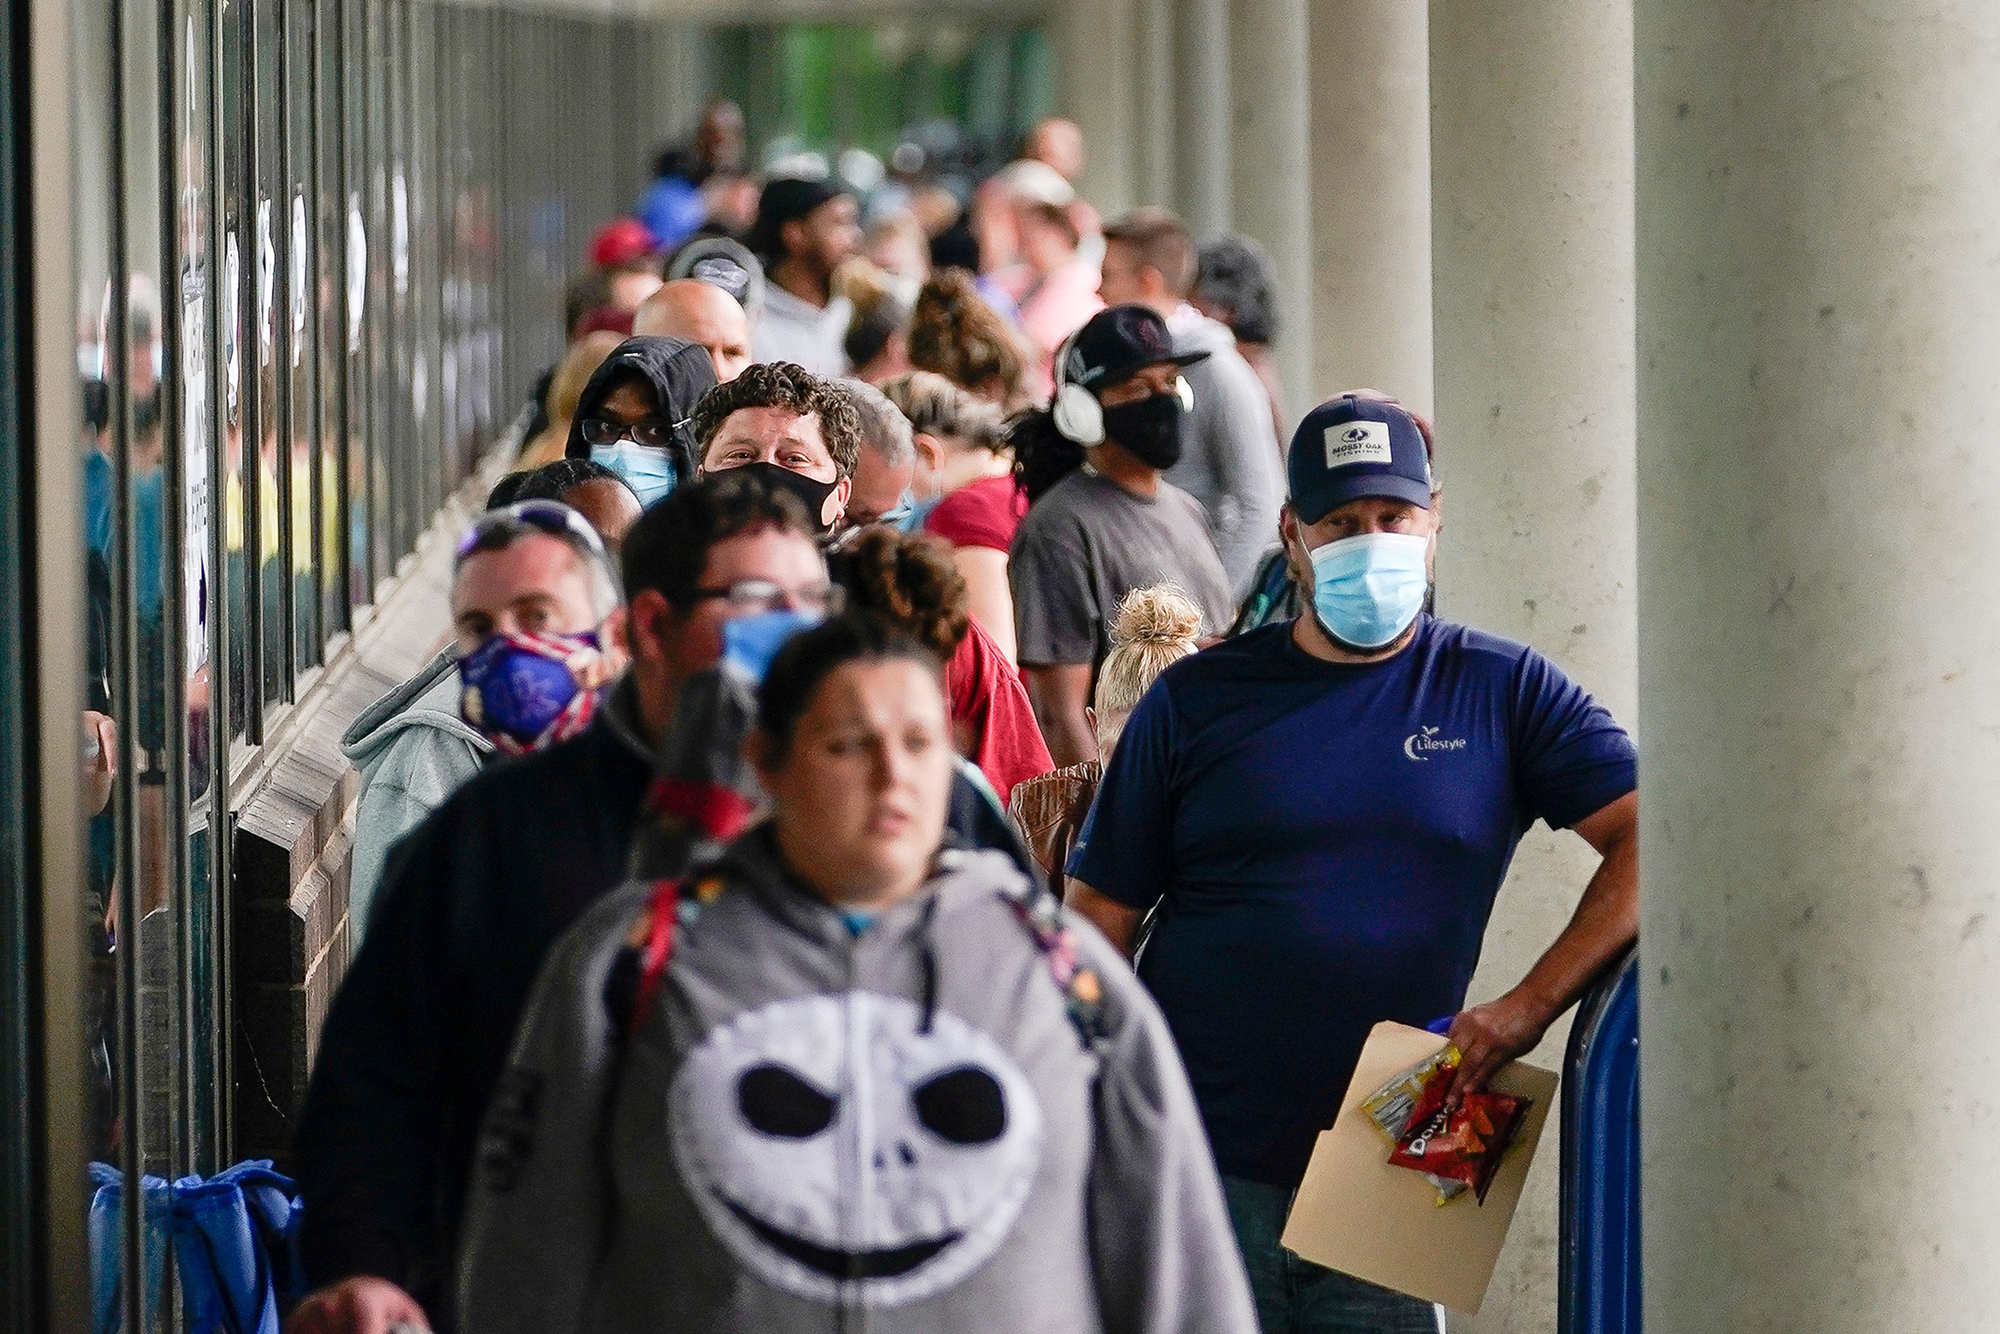 Hundreds of people line up outside a Kentucky Career Center hoping to find assistance with their unemployment claim in Frankfort, Kentucky, U.S. June 18, 2020. (REUTERS/Bryan Woolston)